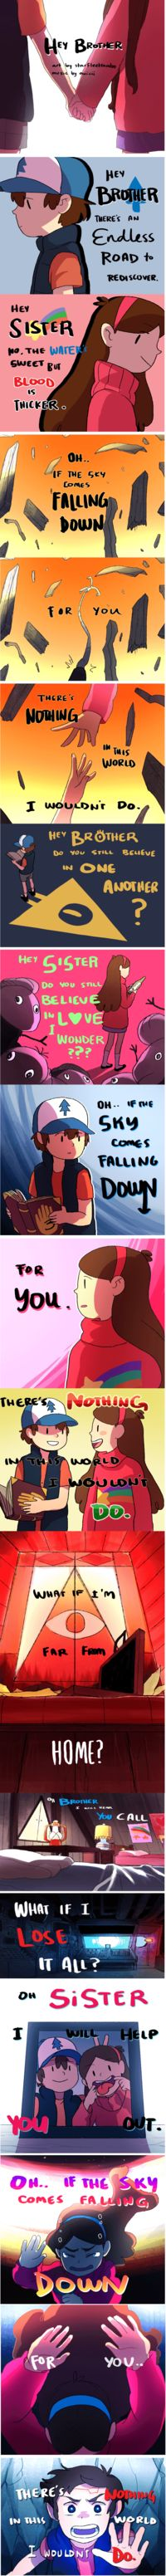 Gravity Falls | I Like Tearing My Heart Into Pieces What Are You Talking About? *Sobs In Corner*